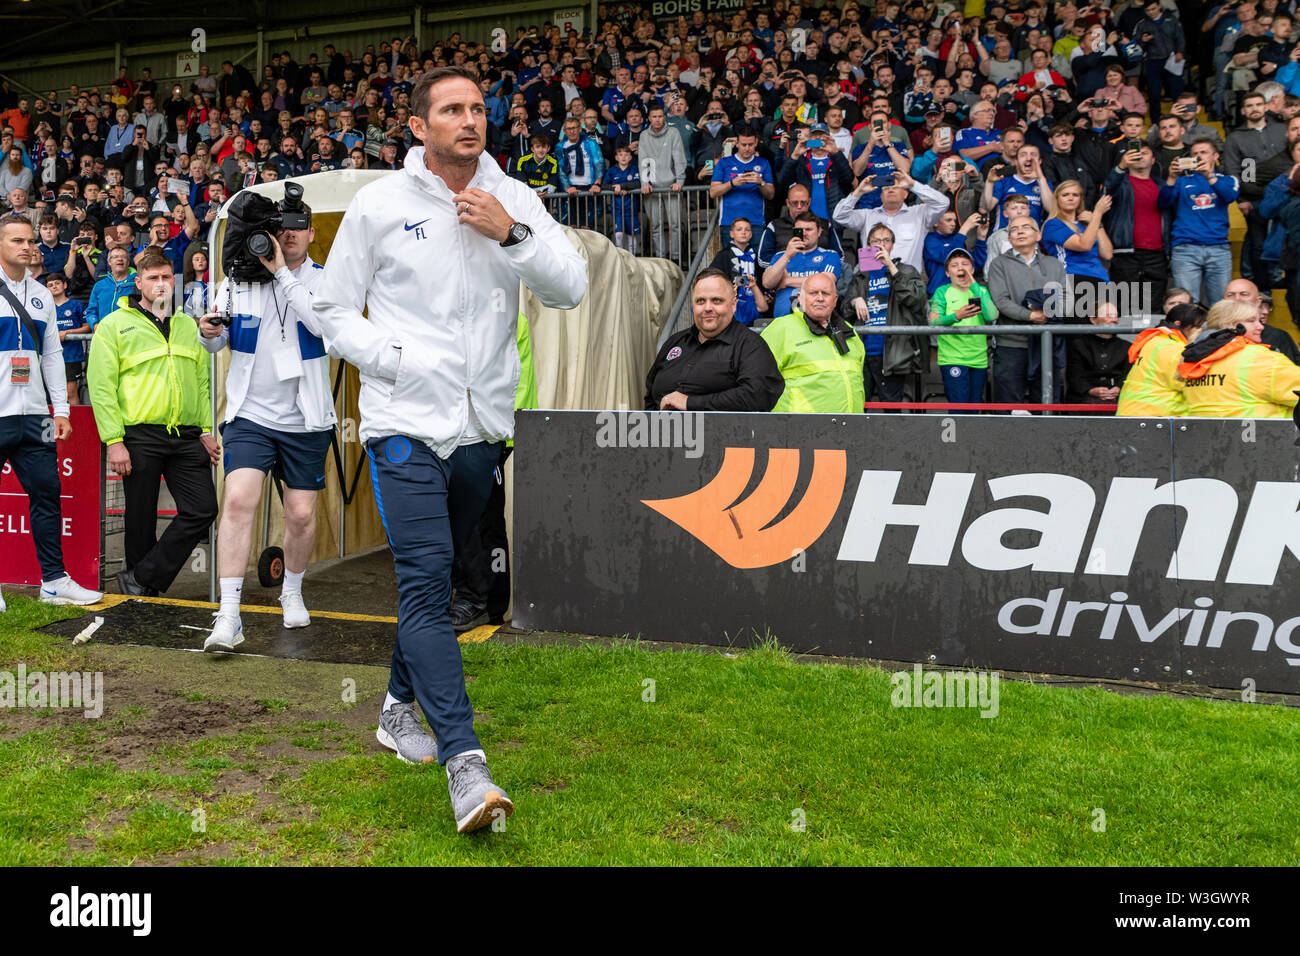 Newly appointed Chelsea Manager Frank Lampard is welcomed on to the pitch ahead of Chelsea's pre season friendly match against Bohemian FC in Dublin. Final Score 1-1. - Stock Image